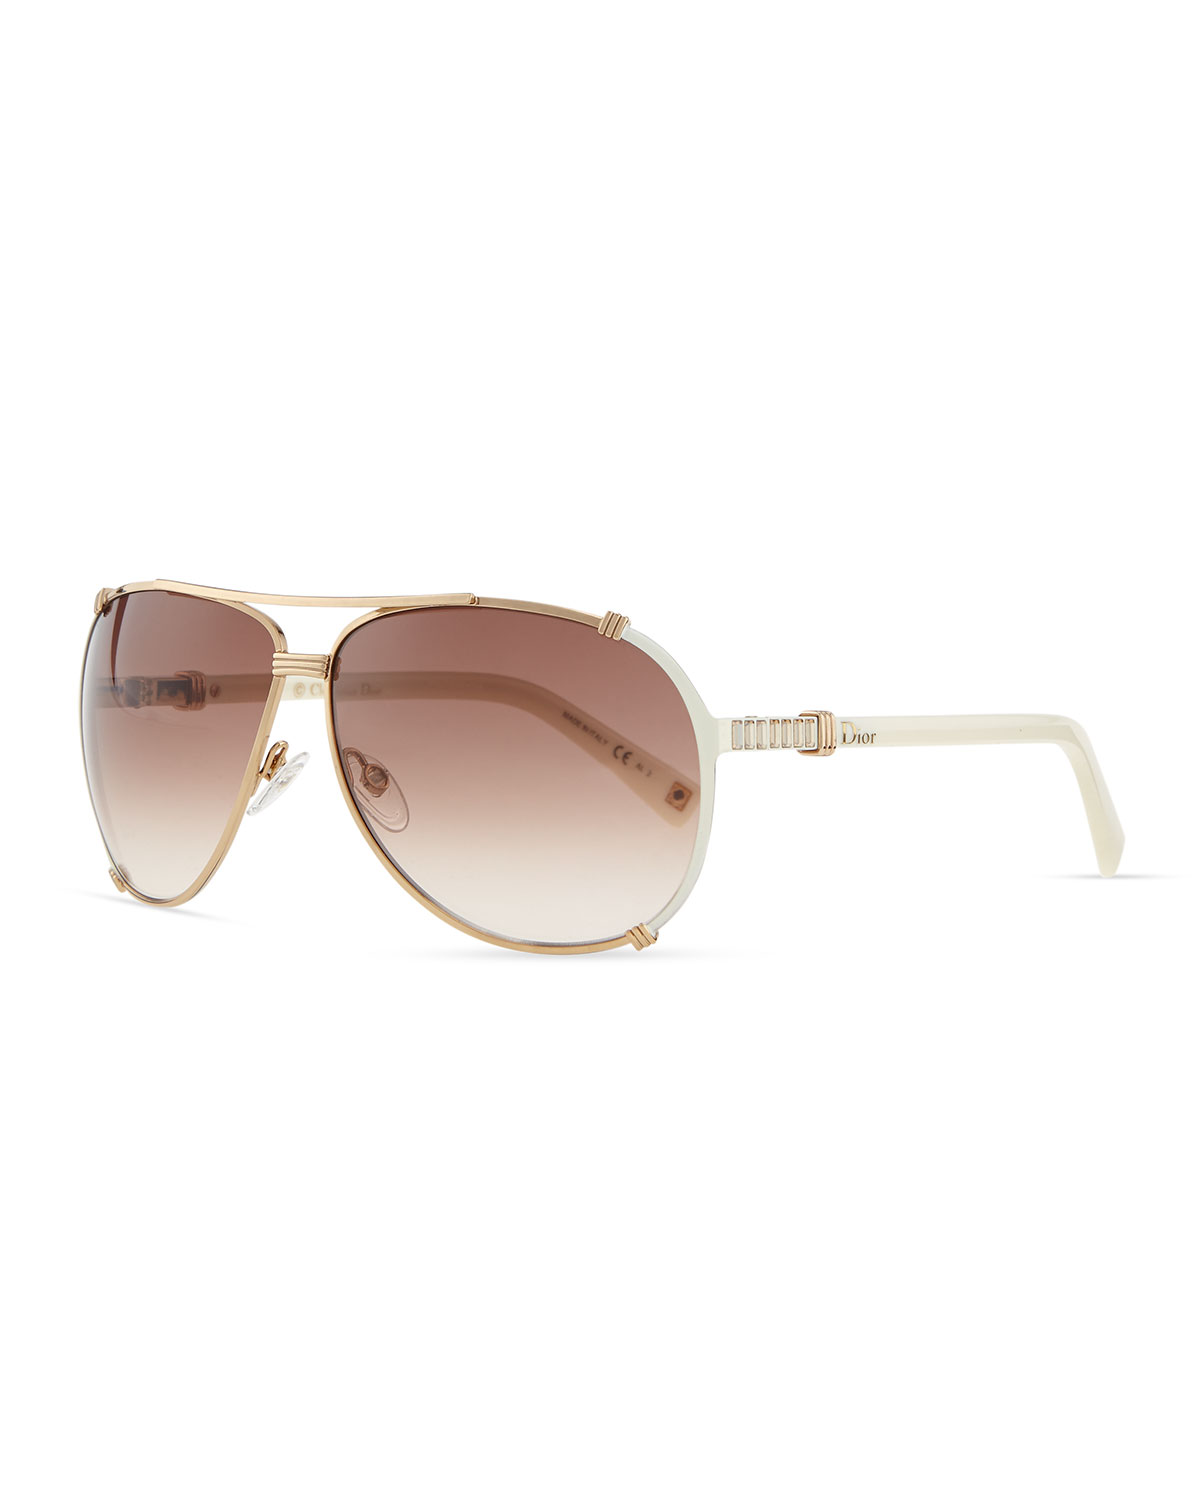 aa6fc82094e Dior Chicago 2 Strass Aviator Sunglasses